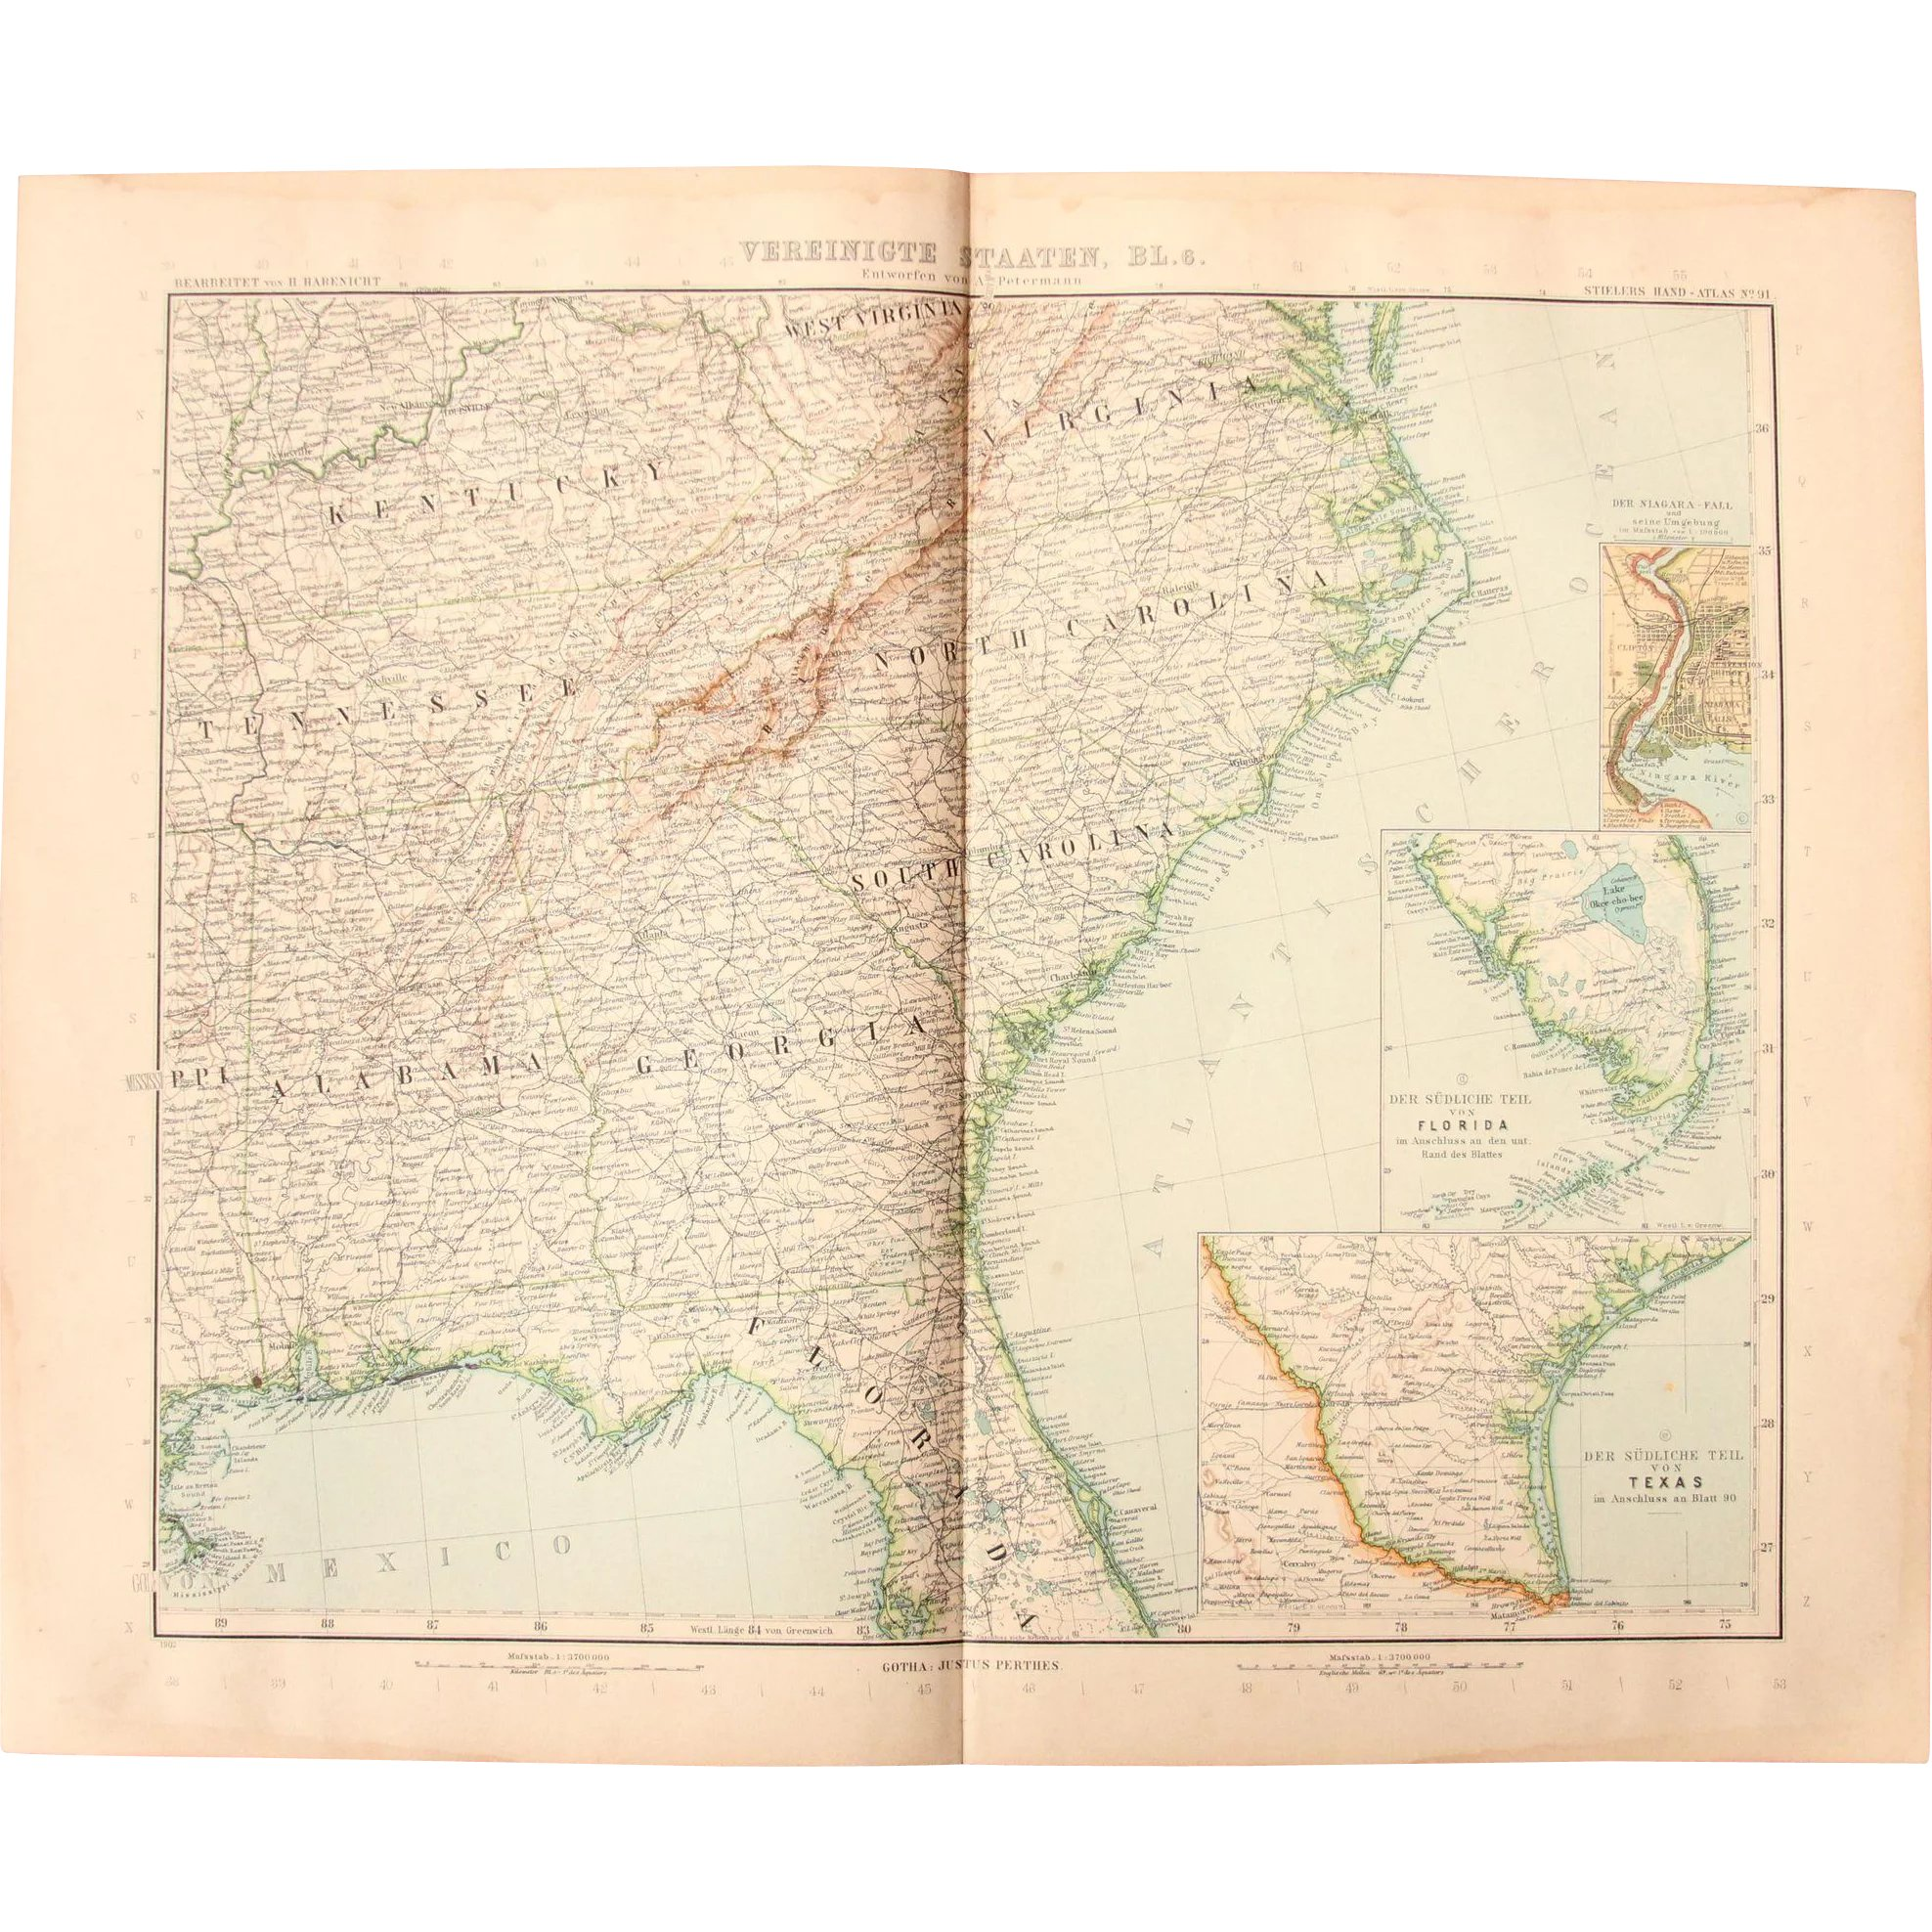 Art nouveau map of the south east usa incl miami atlanta art nouveau map of the south east usa incl miami atlanta nashville vianova ruby lane gumiabroncs Gallery